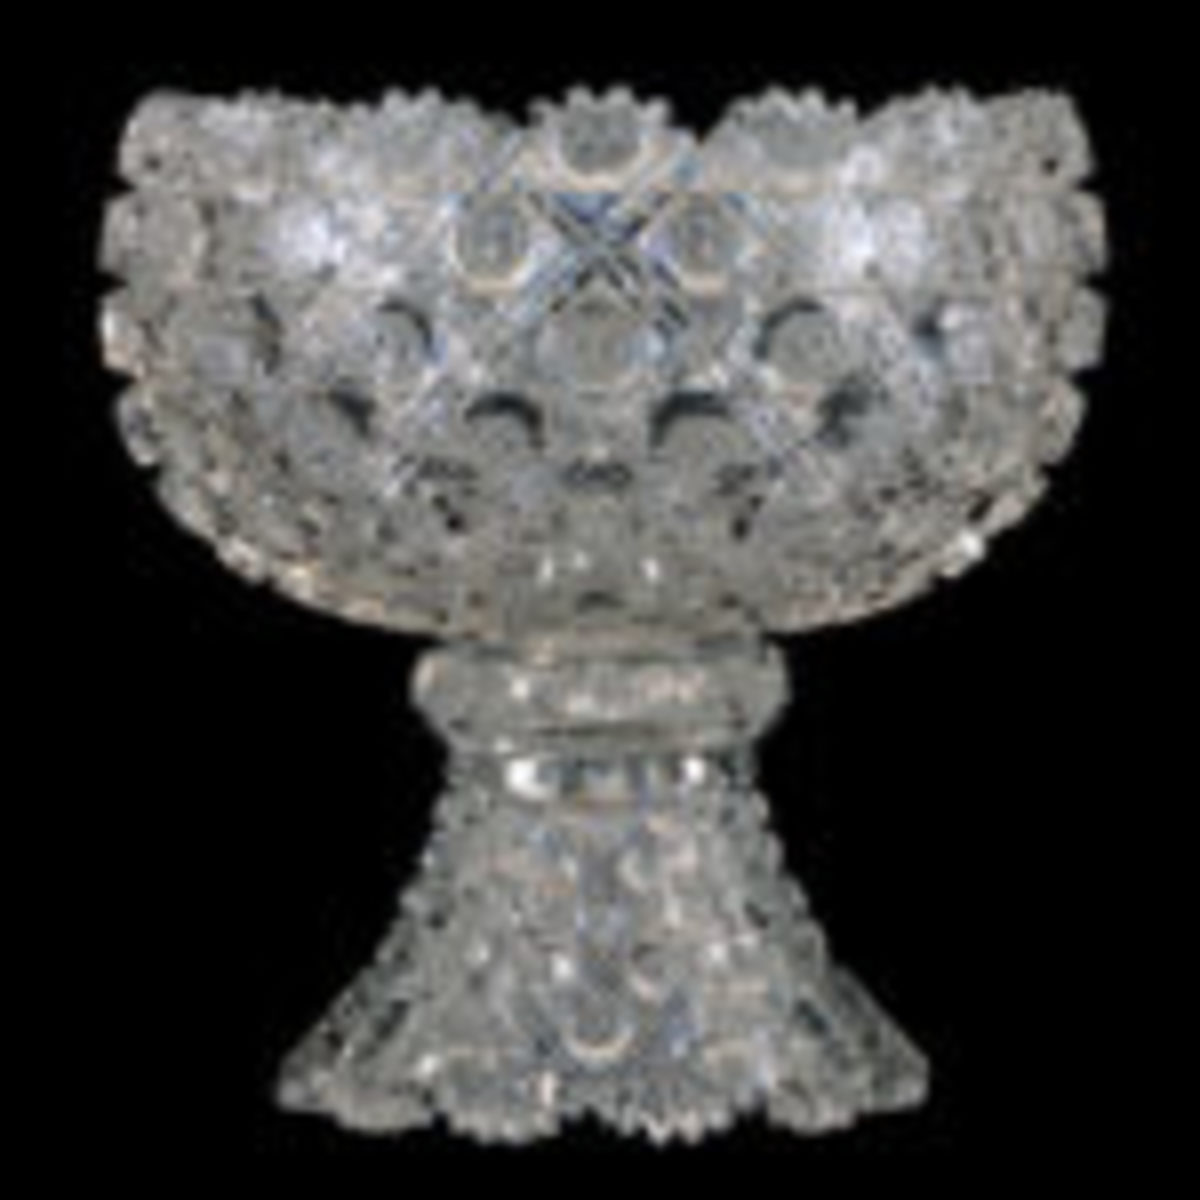 Two-part, 12 inch by 12 inch ABCG punch bowl signed J. Hoare in the Kohinoor pattern, extremely rare with fantastic deep cut hobstar and exquisite blank.